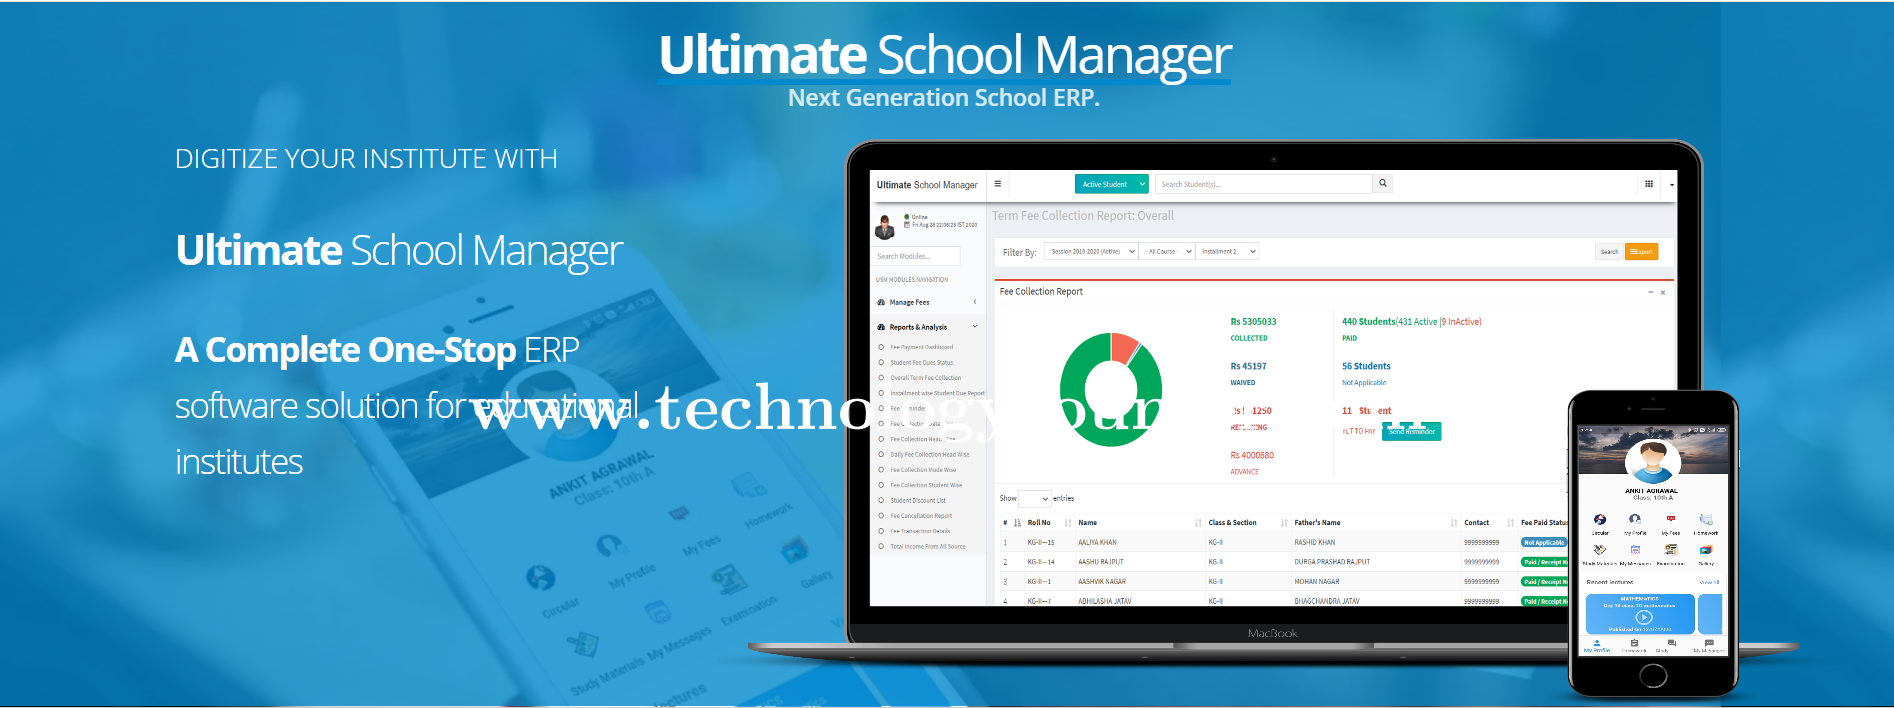 Ultimate School Manager